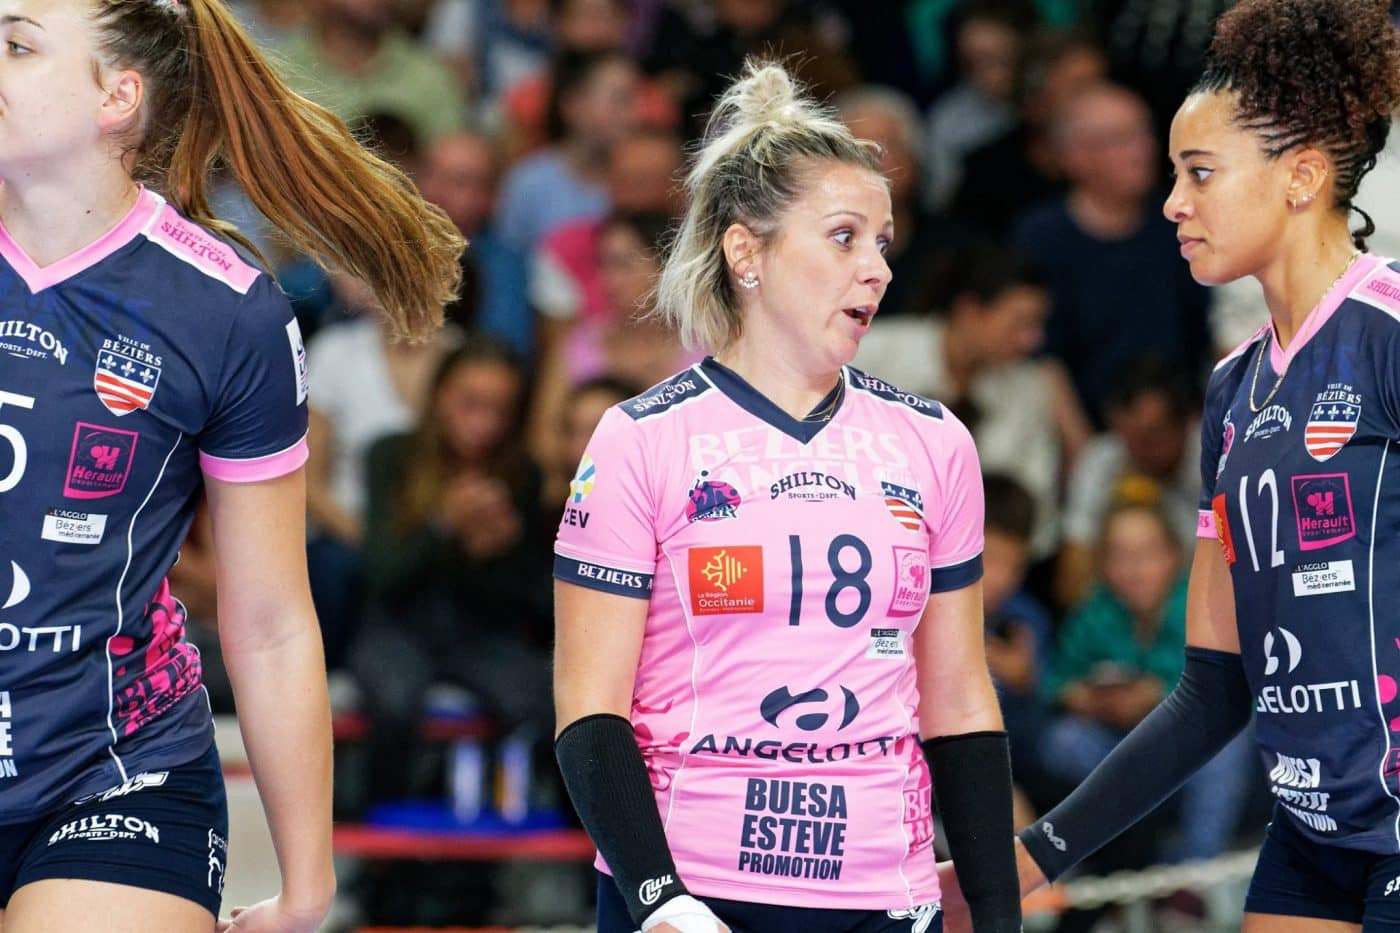 maillot-volley-LAF-2019-2020-beziers-angels-shilton-4